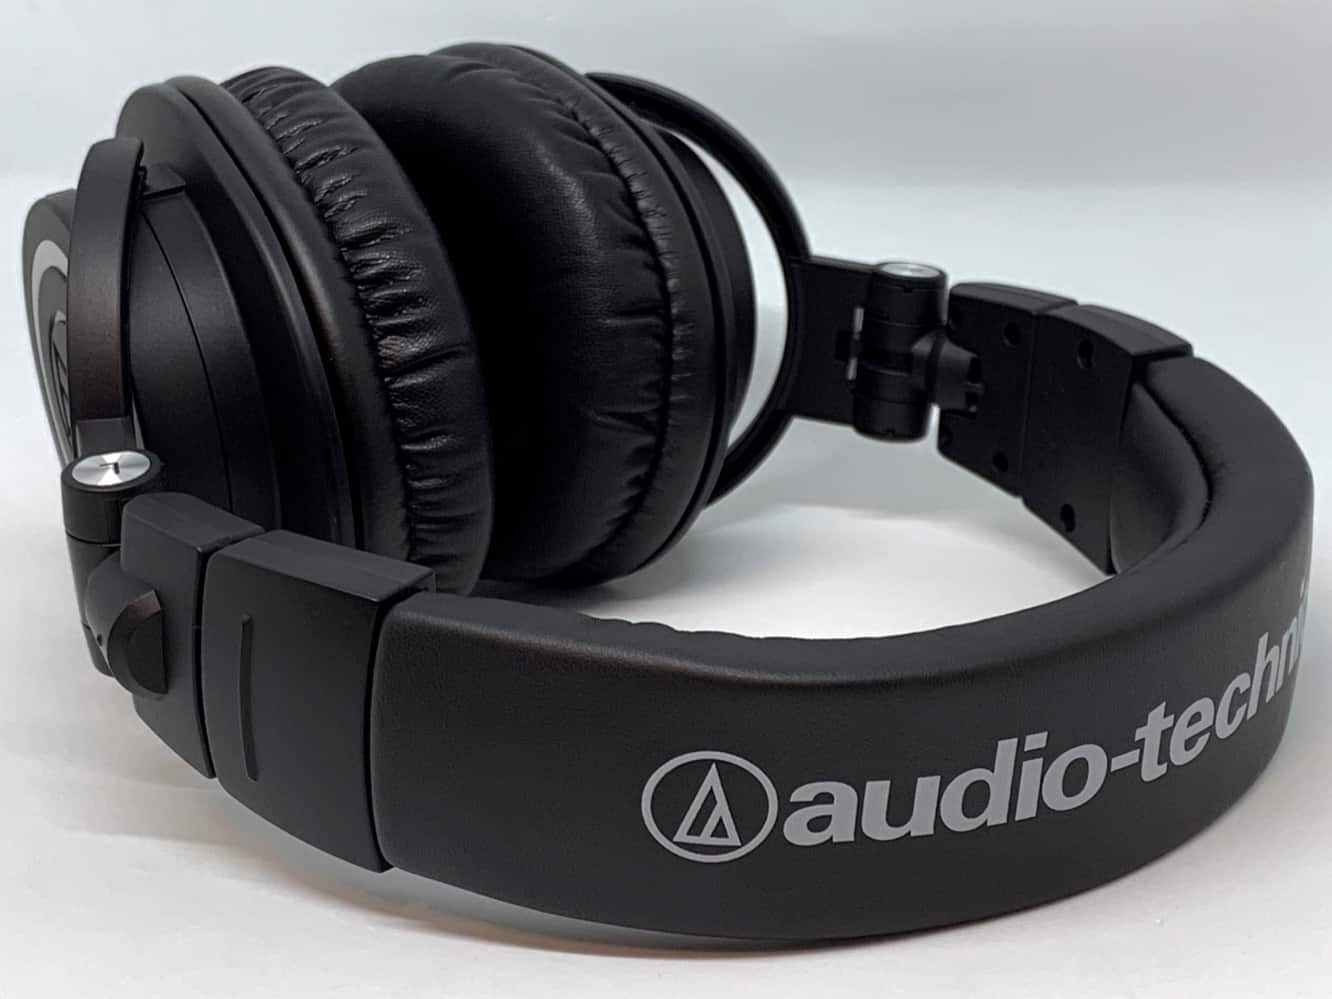 Review: Audio-Technica ATH-M50xBT